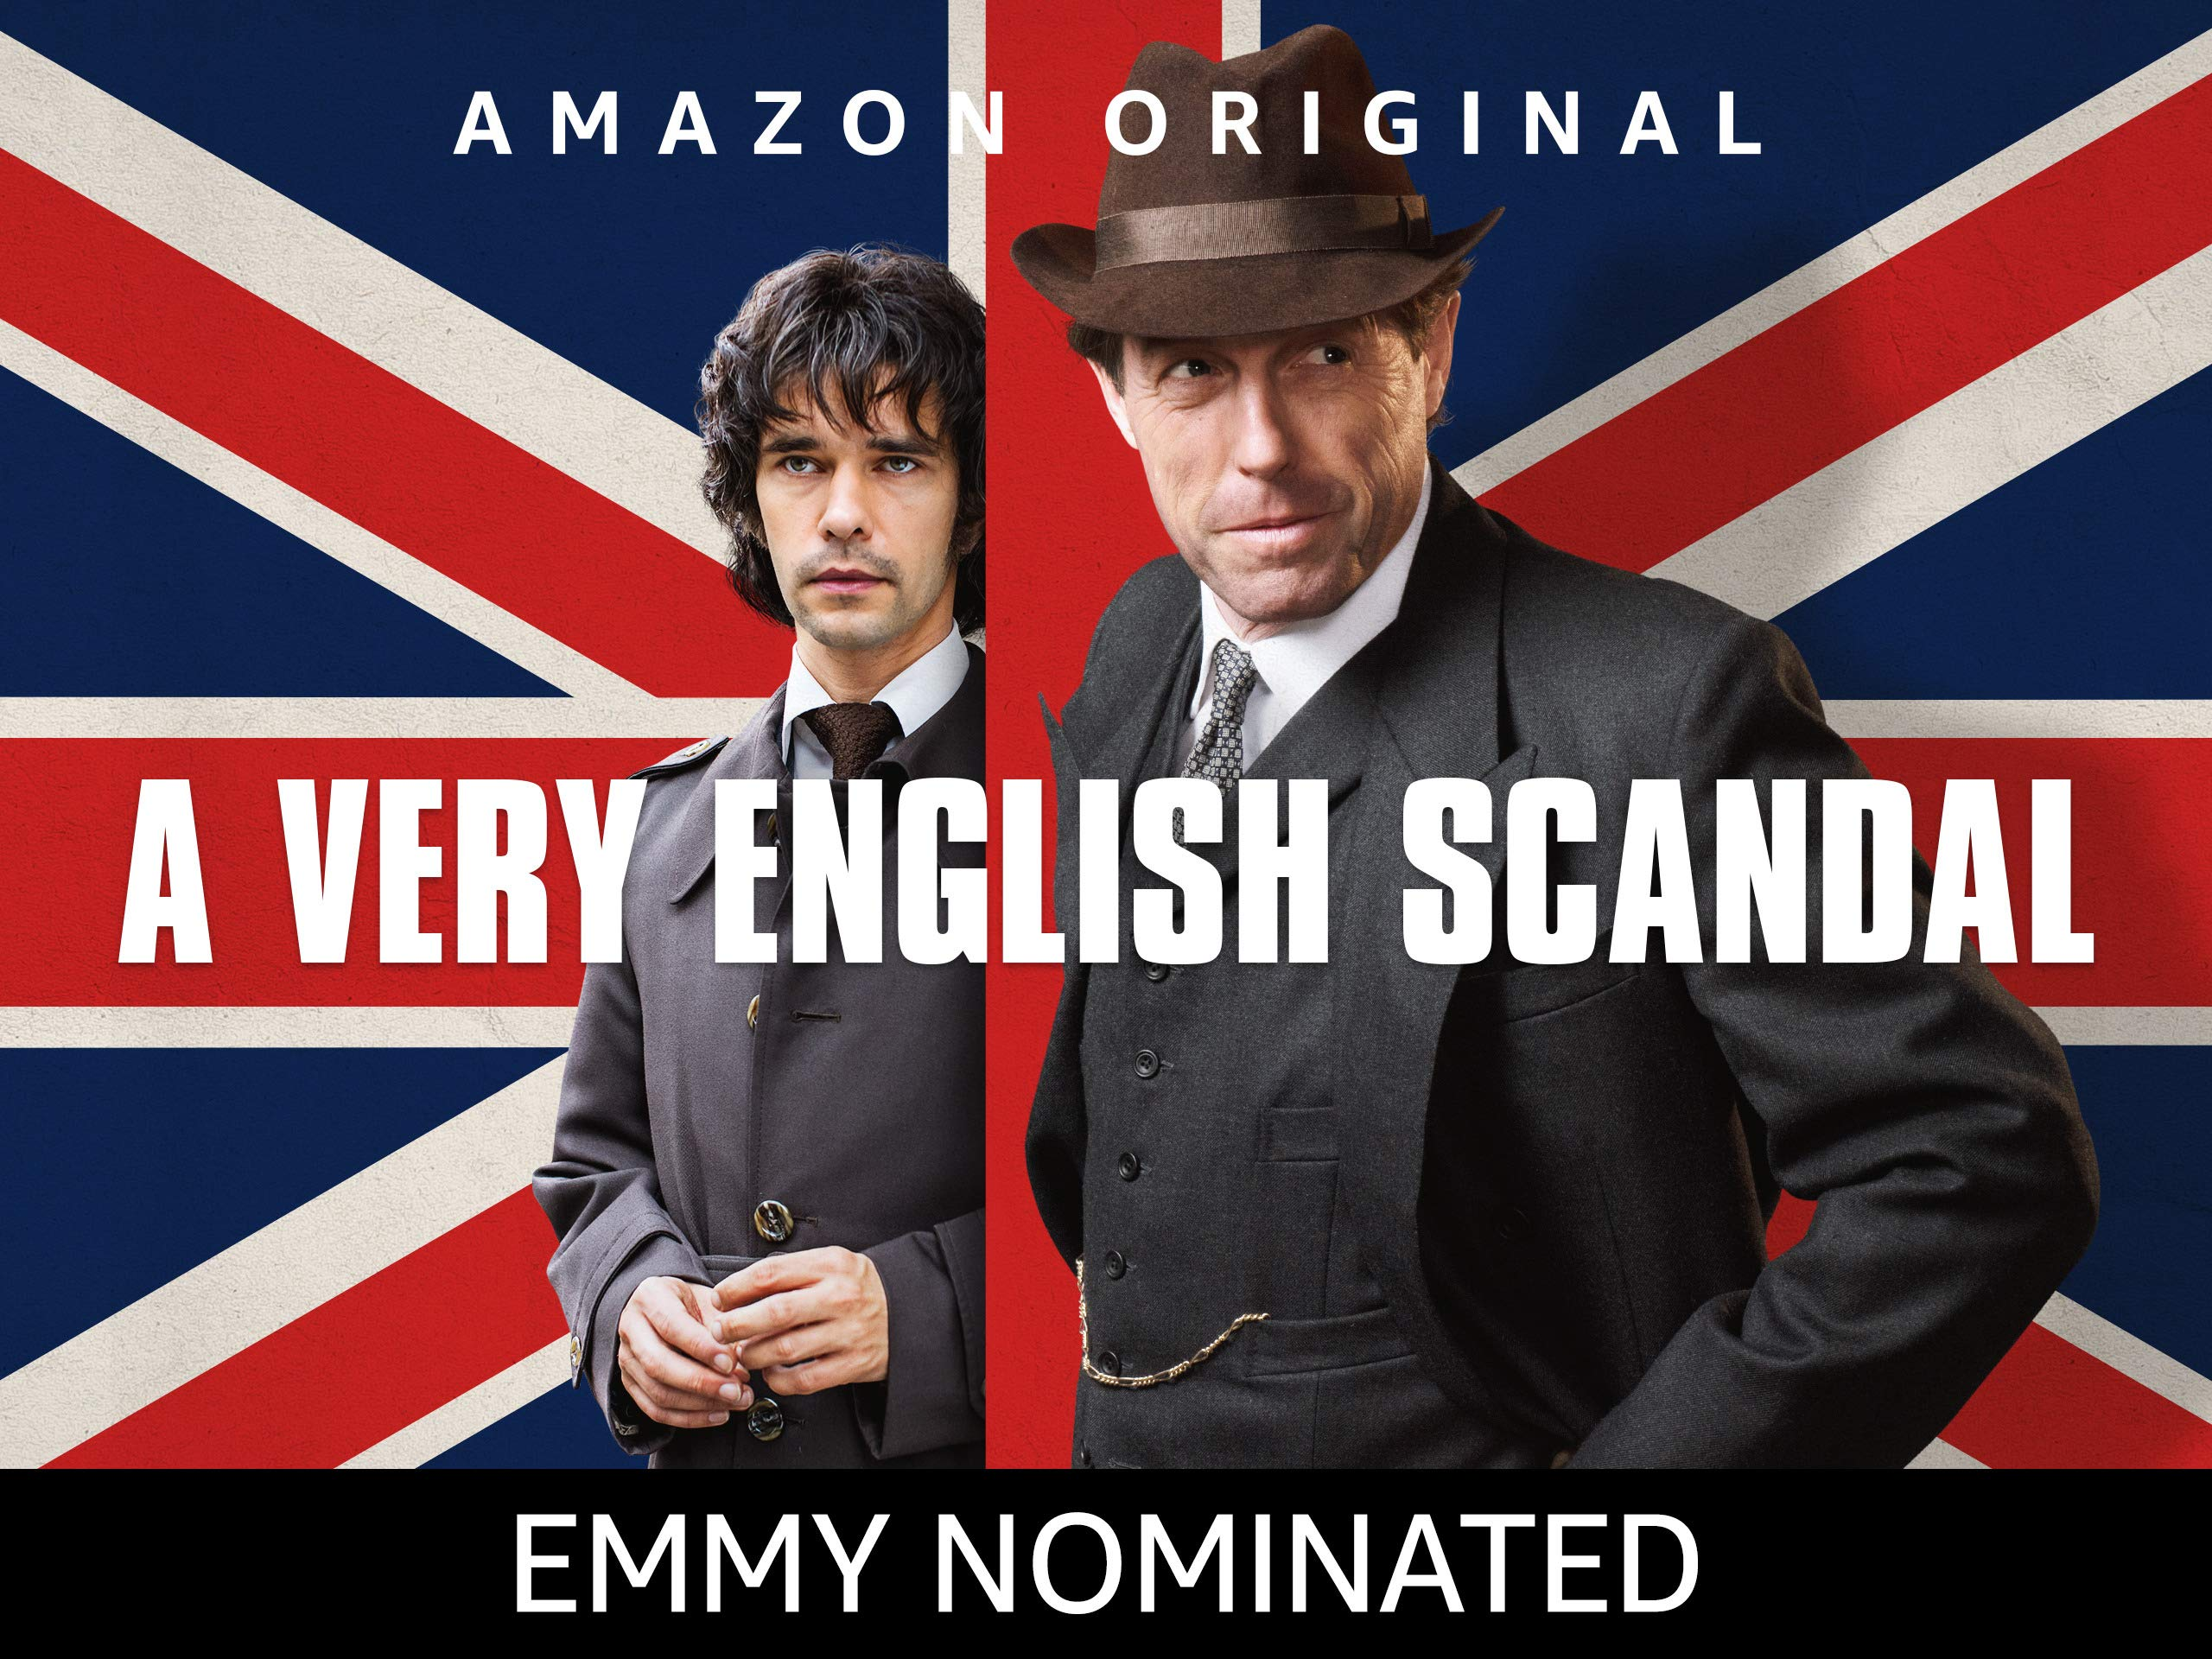 Amazon com: Watch A Very English Scandal - Season 1 | Prime Video